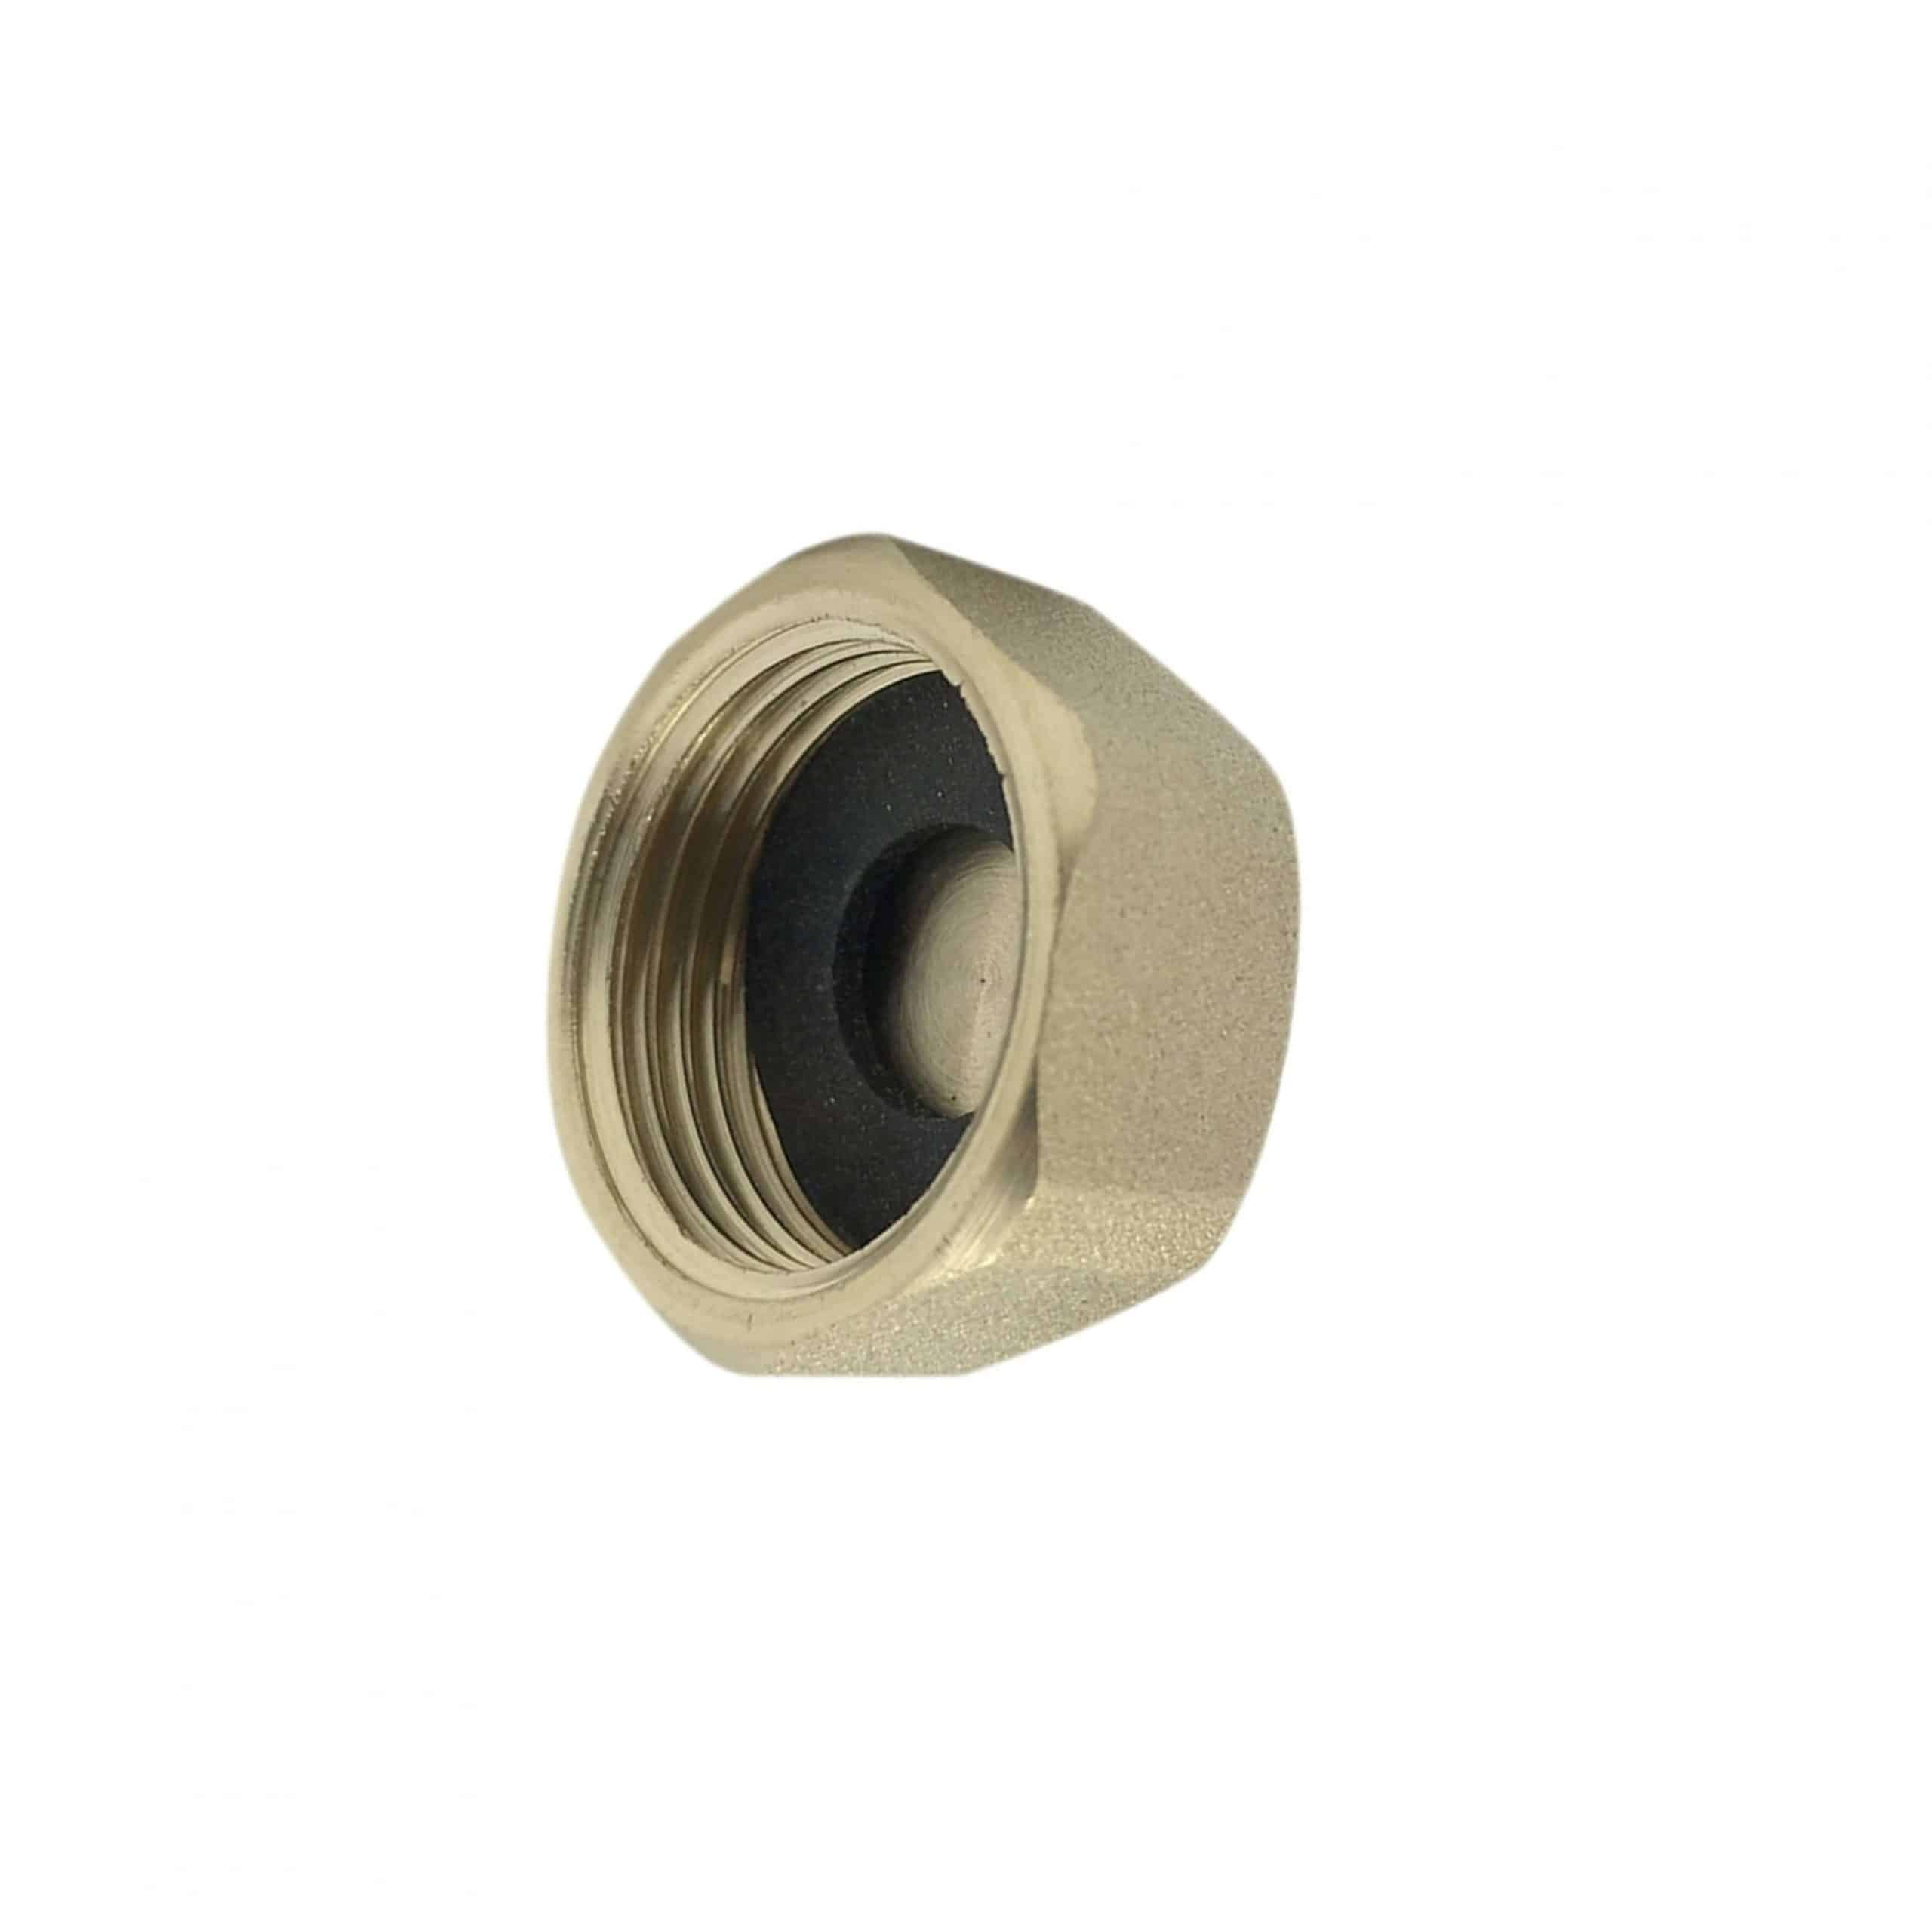 "Brass 1/2"" End Cap & Washer"